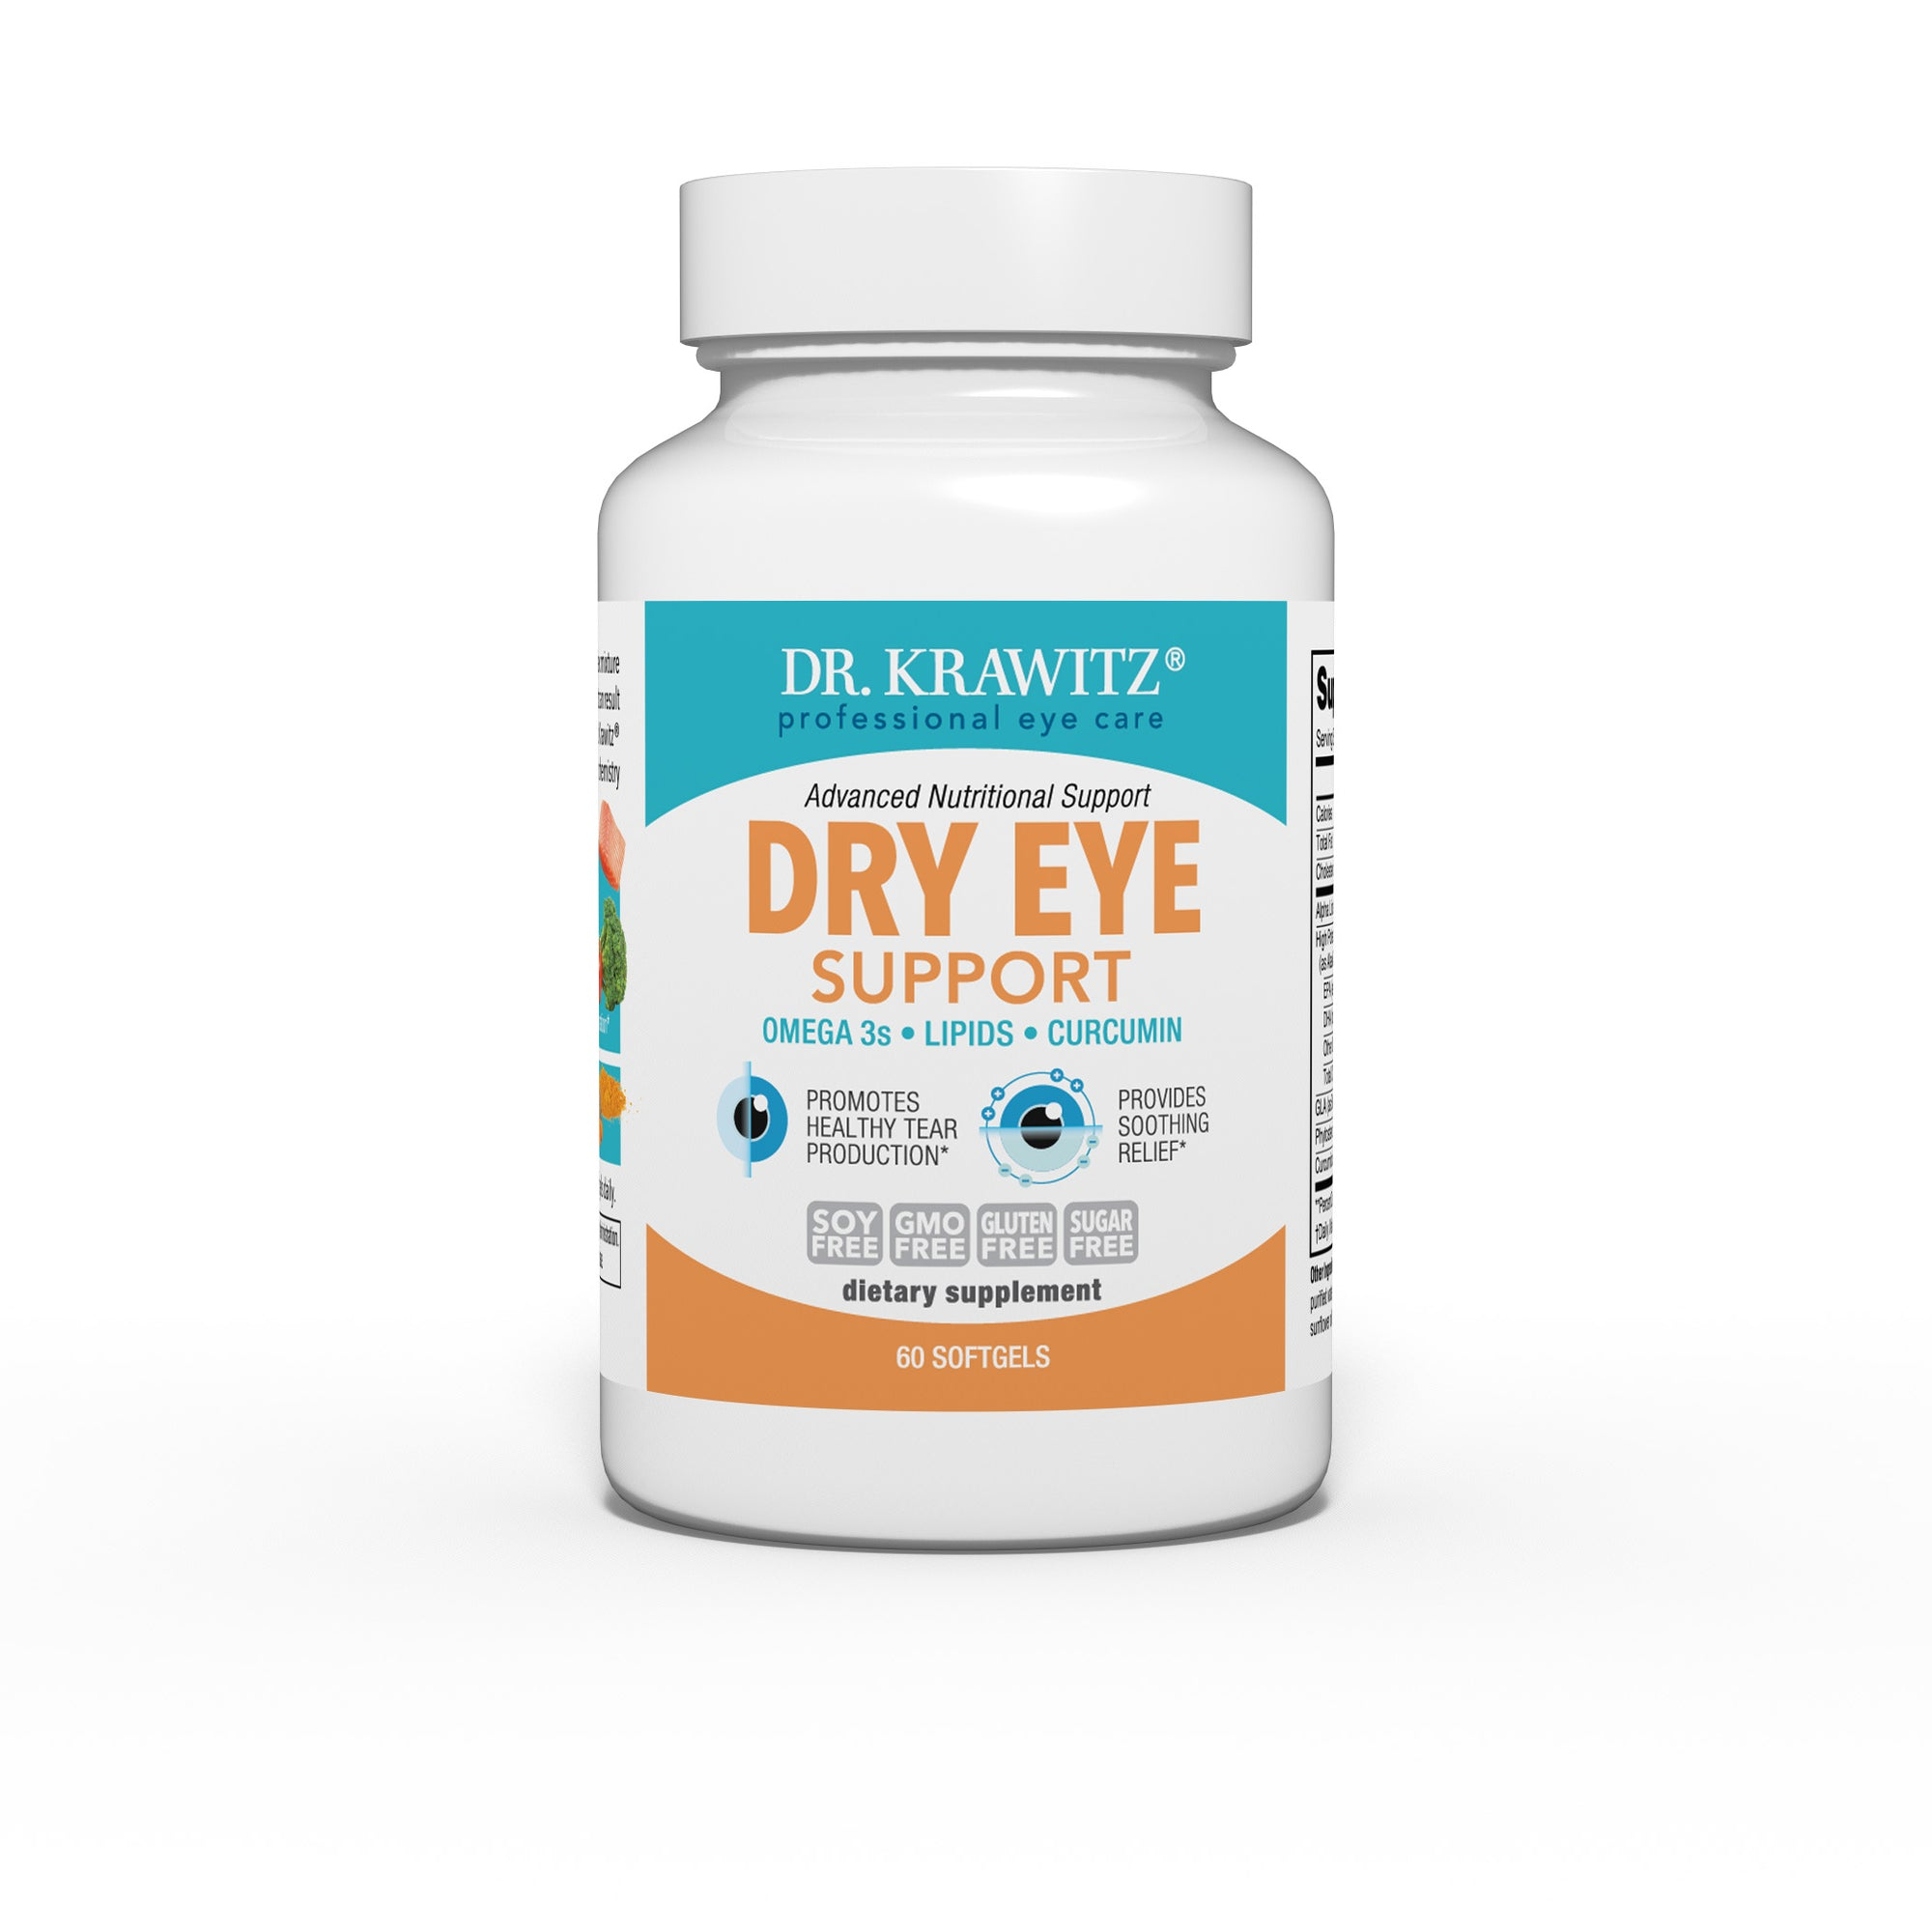 Dry Eye Support